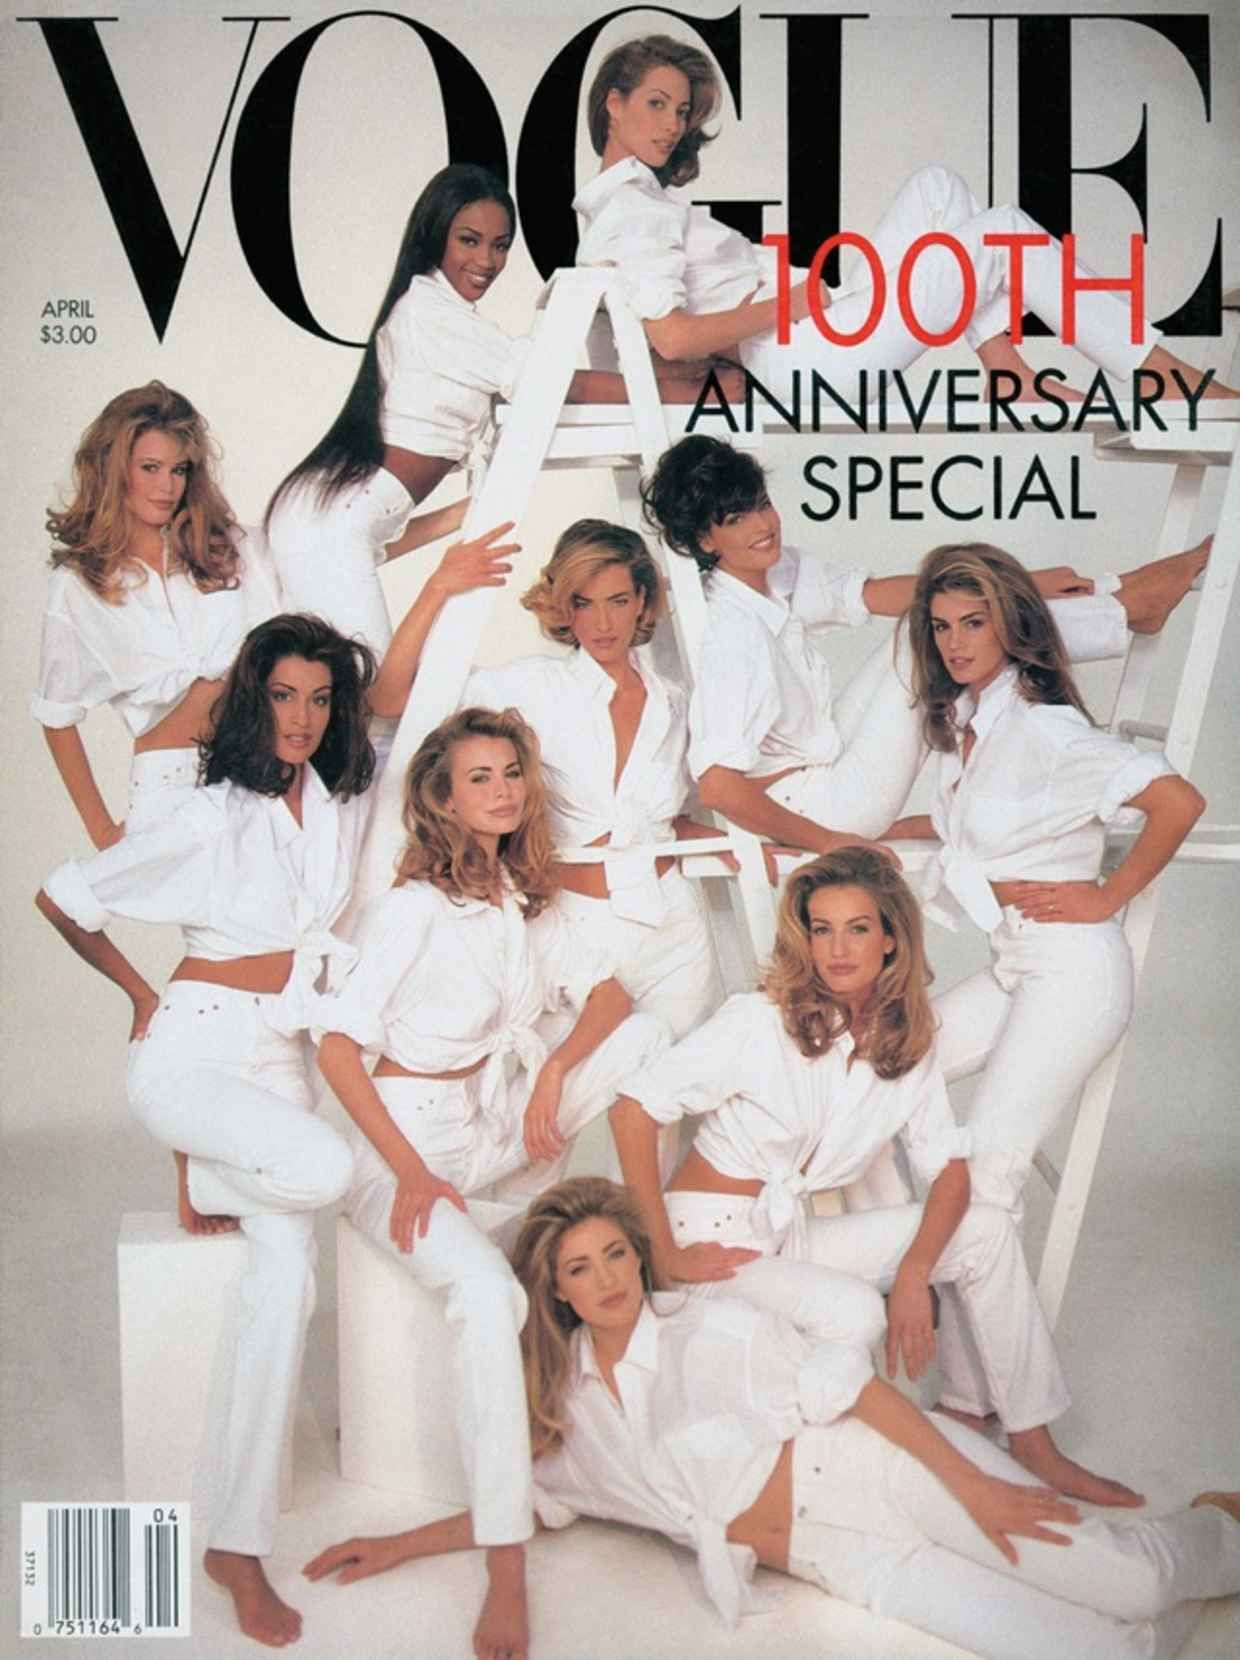 Vogue 100th Anniversary Special.1999